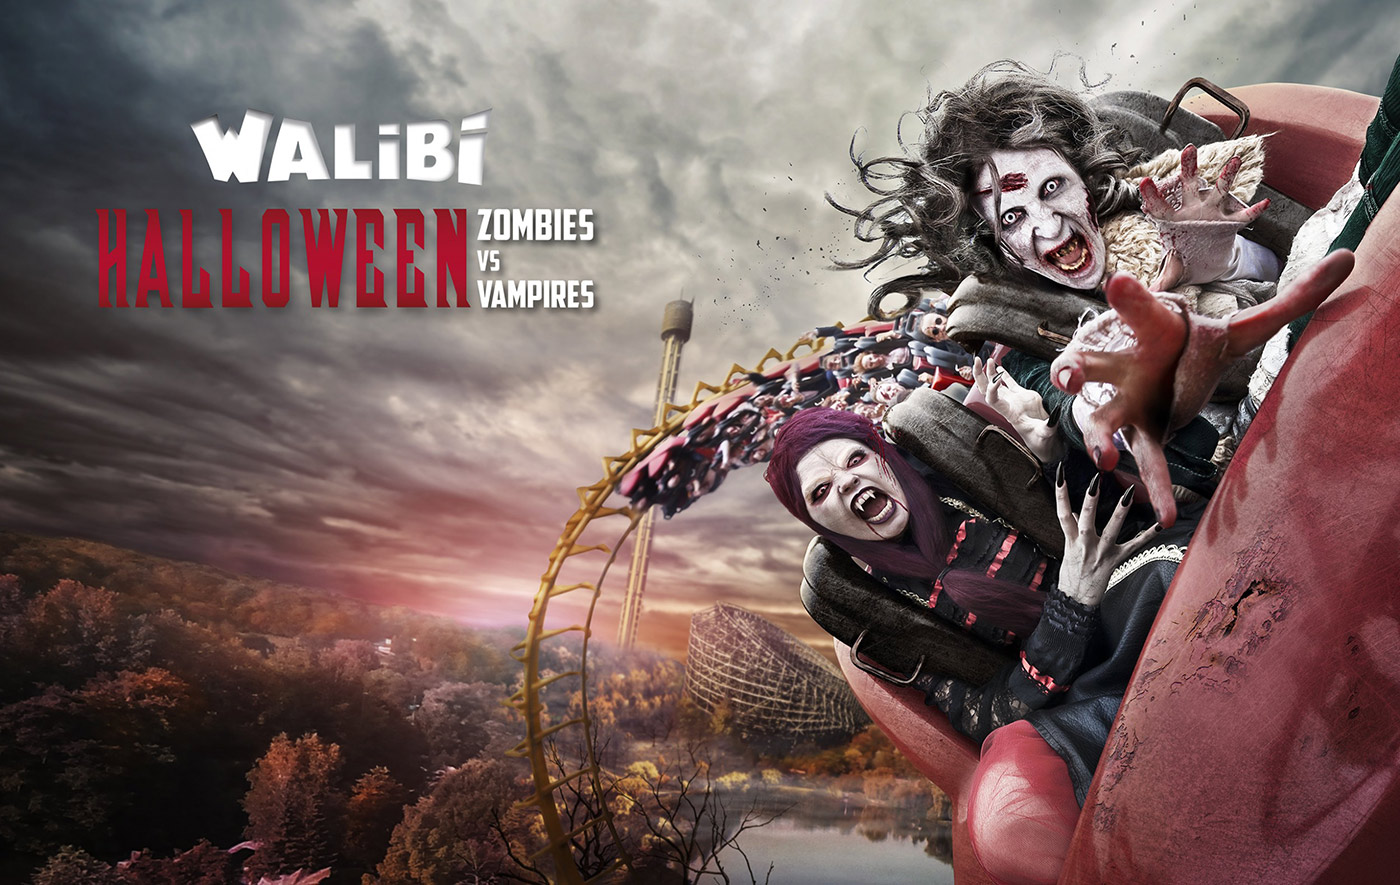 walibi halloween zombies vs vampires